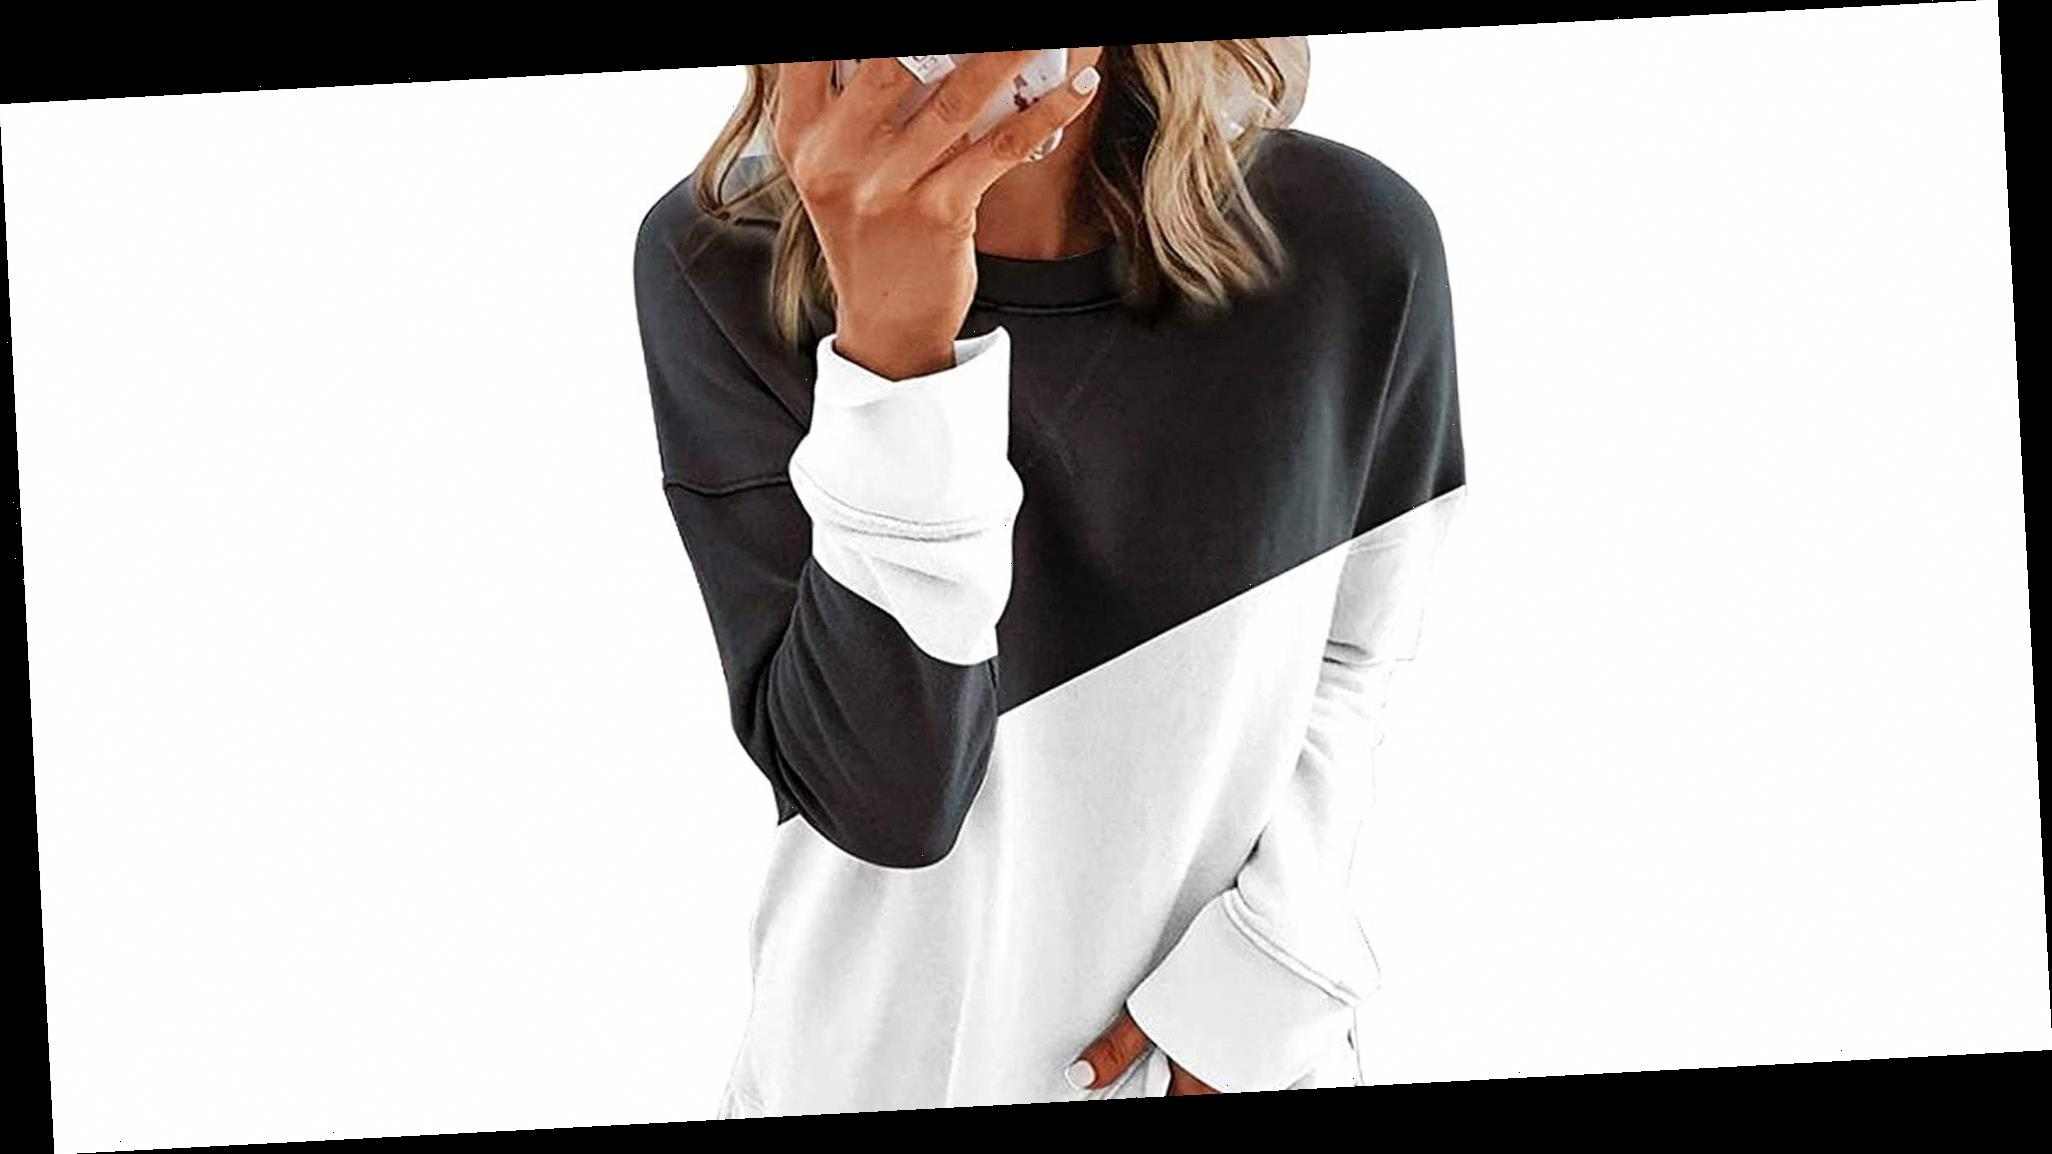 Pair This Sweatshirt With Leggings for the Ultimate Lazy Day Look